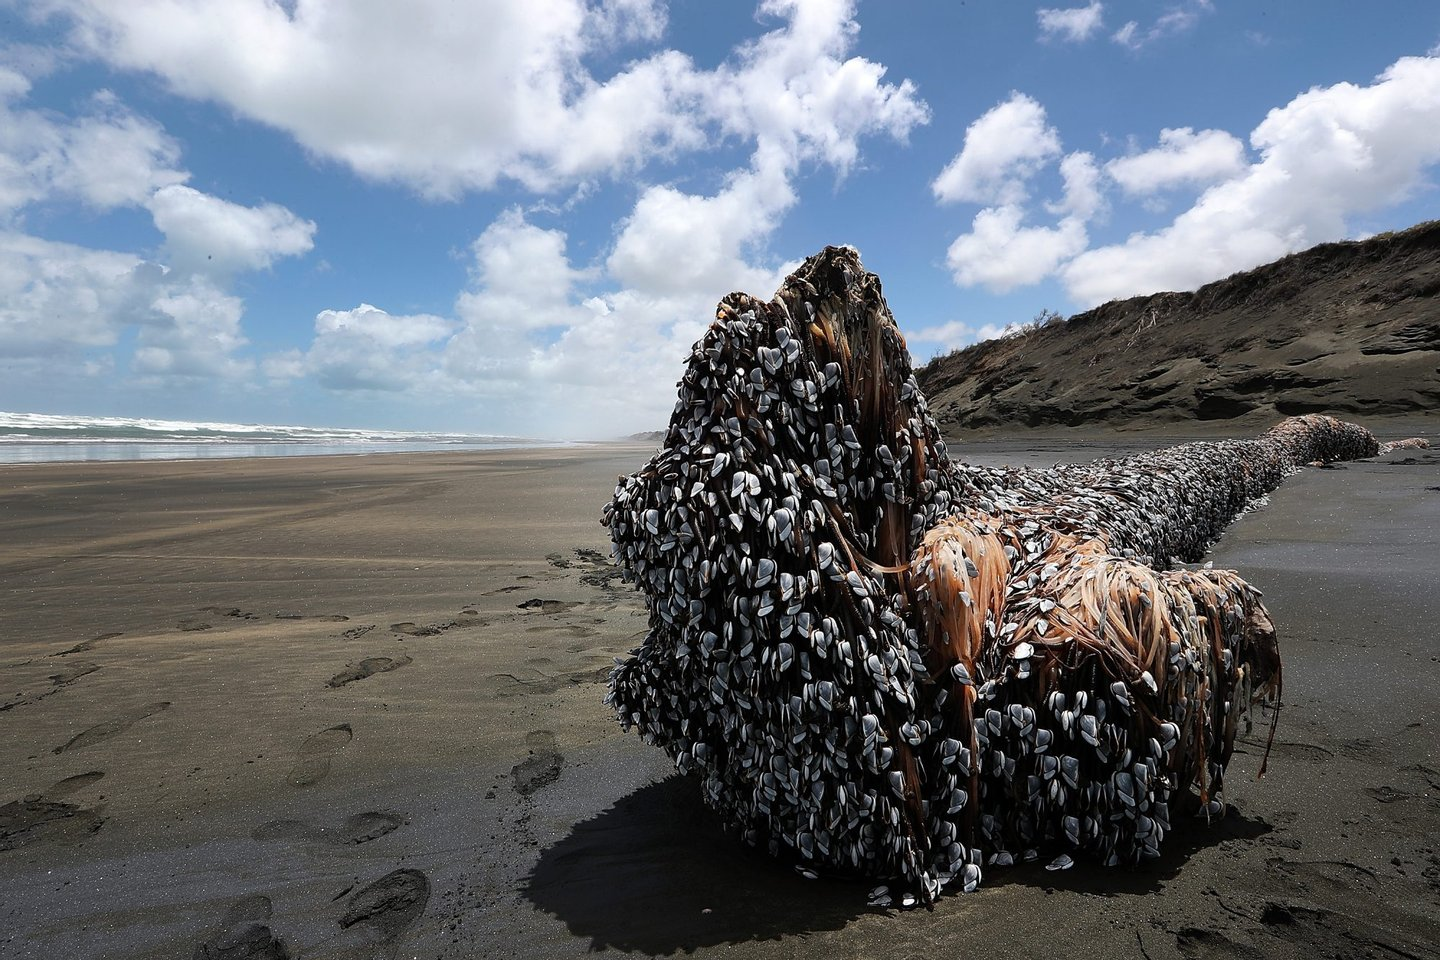 AUCKLAND, NEW ZEALAND - DECEMBER 12: A large driftwood tree covered in gooseneck barnacles sits in the sun on Auckland's west coast on December 12, 2016 in Auckland, New Zealand. The large object washed up on Muriwai beach on Saturday, 10 December. (Photo by Fiona Goodall/Getty Images)